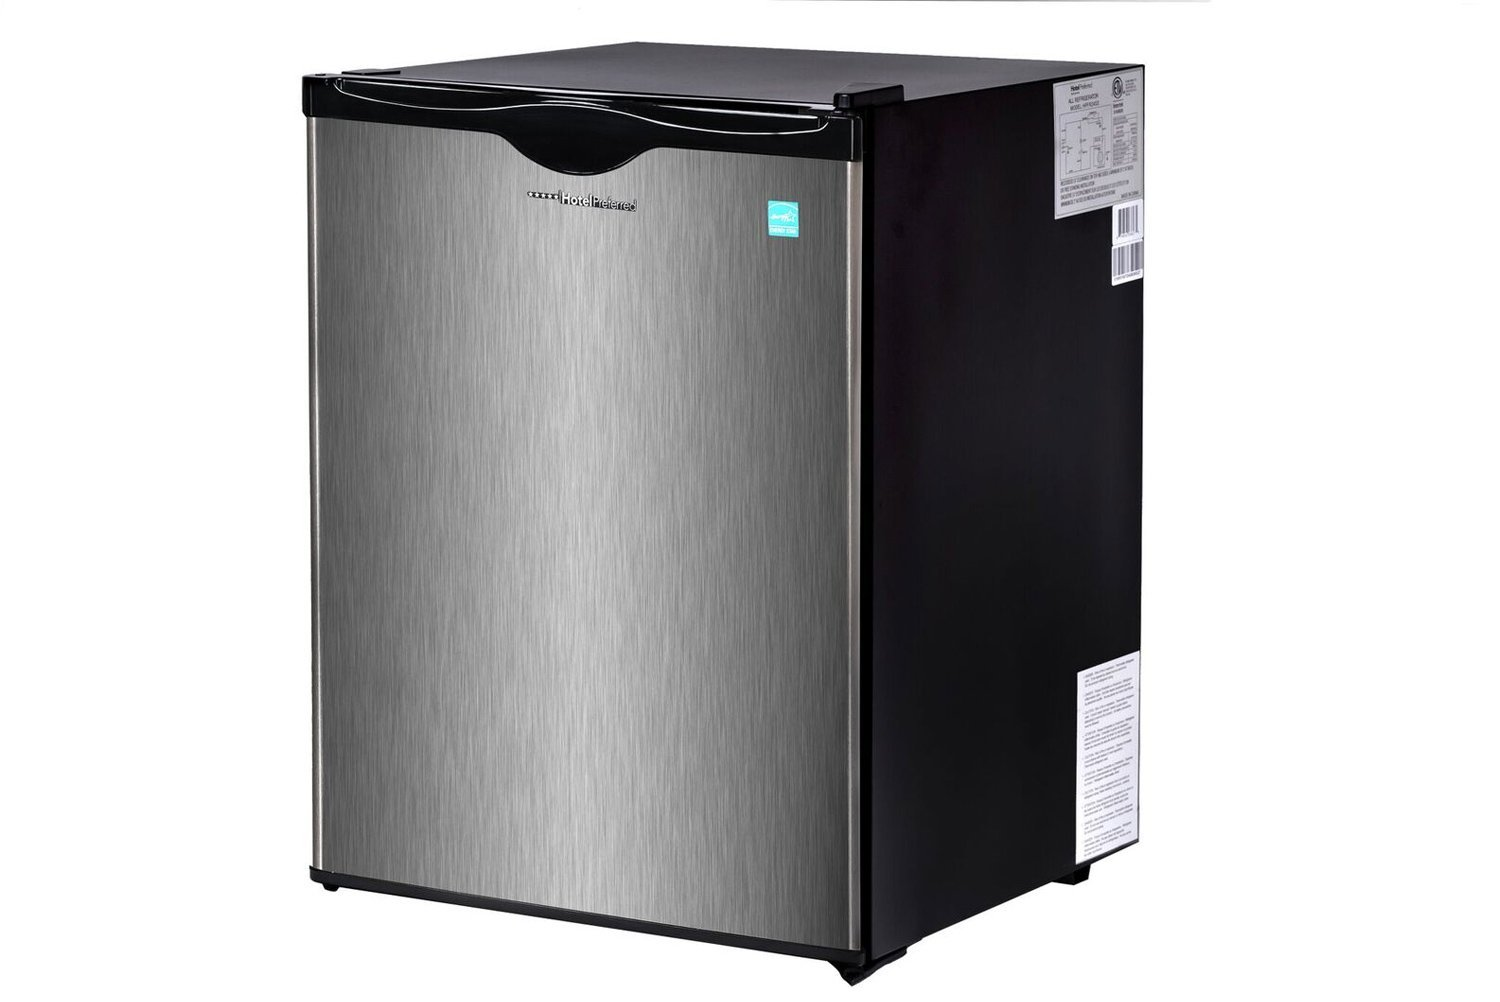 Electronics & Appliances - Hotel Fridge HPRF24 2.4 Cubic Foot Compact Refrigerator